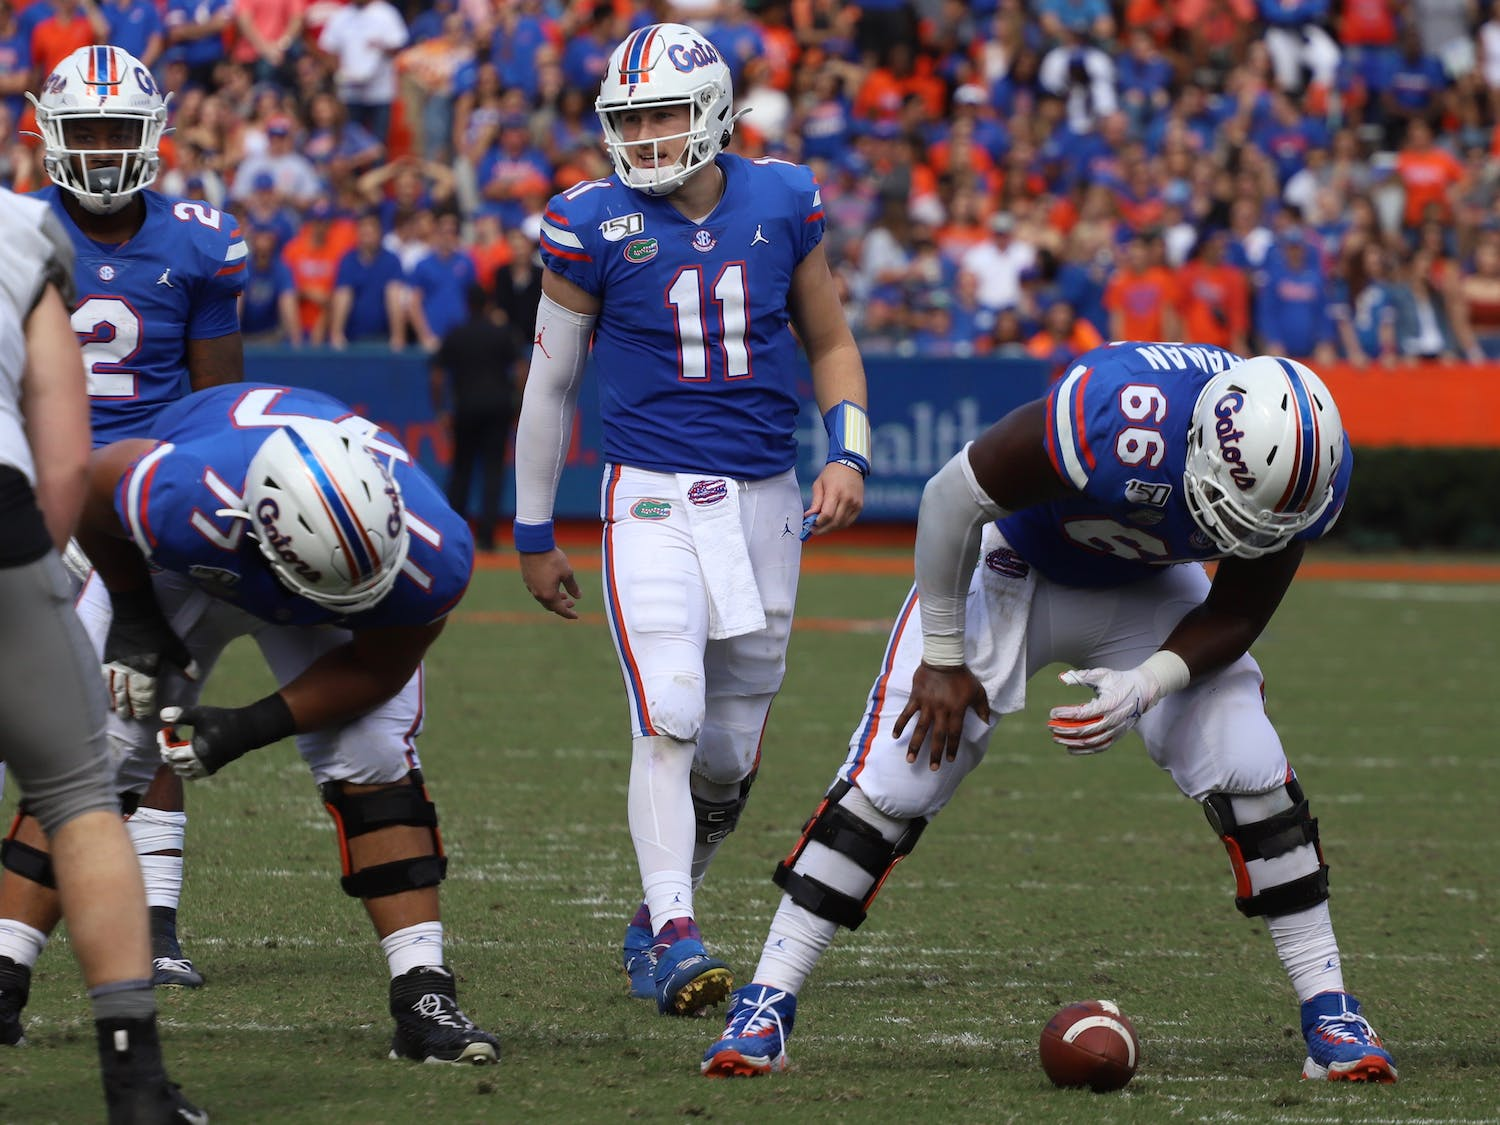 Florida's offense managed only 14 first-half points despite the dominating defensive performance.